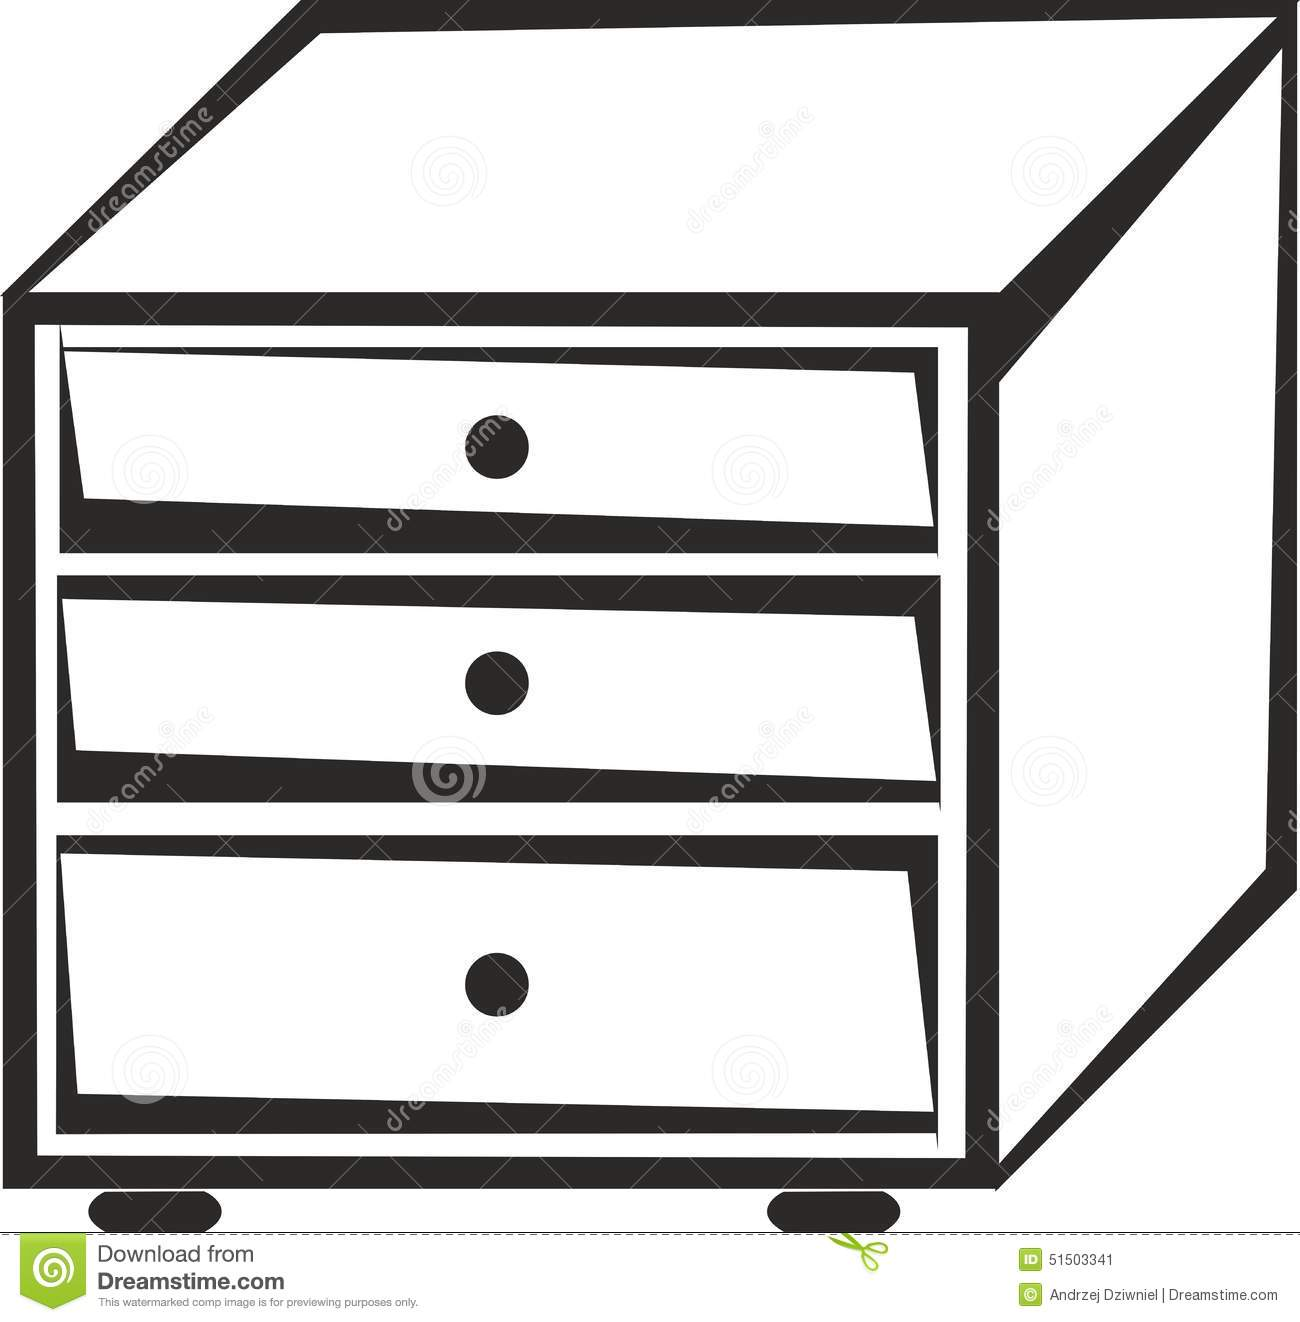 Cabinet with drawers stock vector. Illustration of isolated.